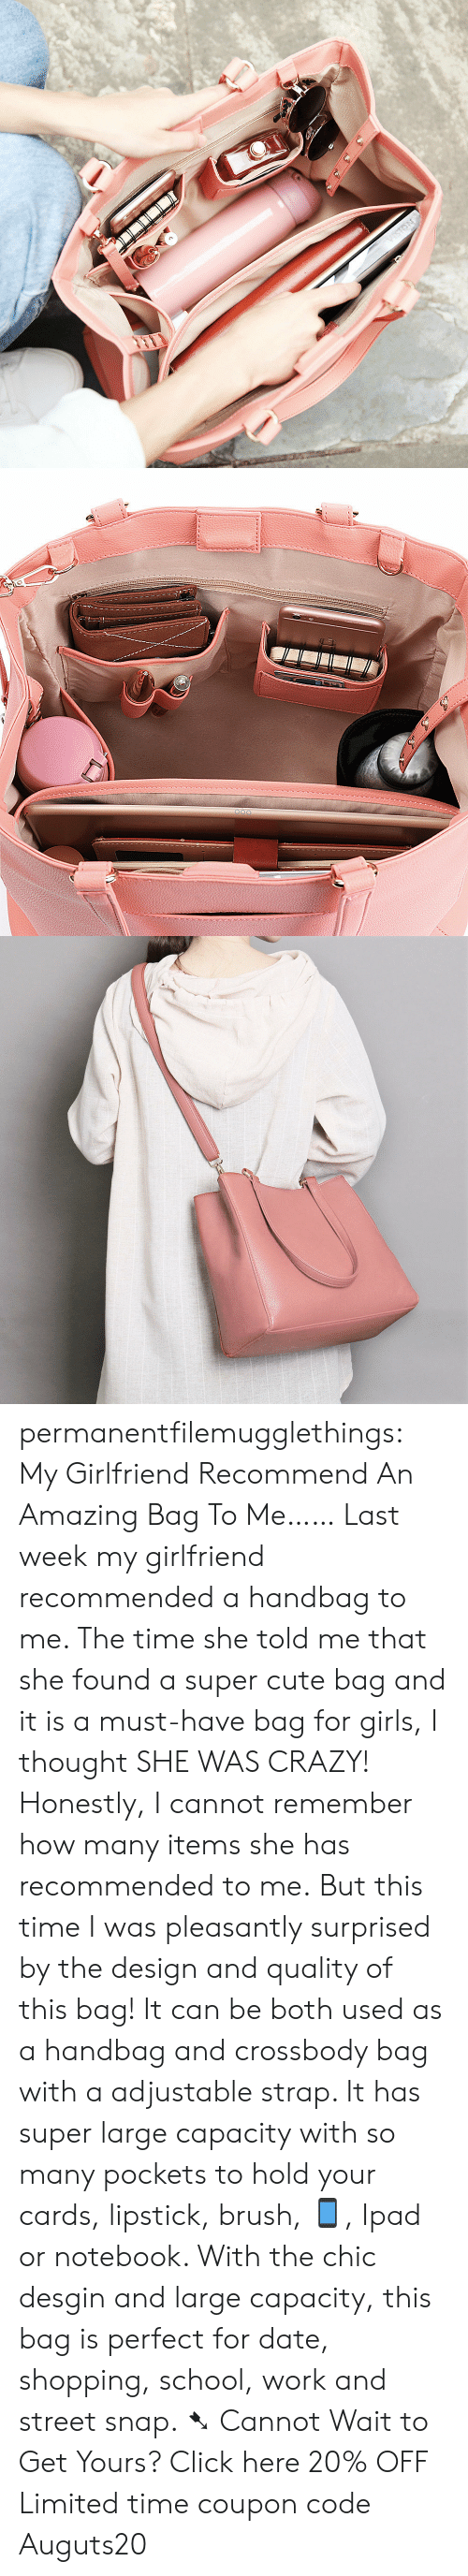 Click, Crazy, and Cute: permanentfilemugglethings: My Girlfriend Recommend An Amazing Bag To Me…… Last week my girlfriend recommended a handbag to me. The time she told me that she found a super cute bag and it is a must-have bag for girls, I thought SHE WAS CRAZY! Honestly, I cannot remember how many items she has recommended to me. But this time I was pleasantly surprised by the design and quality of this bag! It can be both used as a handbag and crossbody bag with a adjustable strap. It has super large capacity with so many pockets to hold your cards, lipstick, brush, 📱, Ipad or notebook. With the chic desgin and large capacity, this bag is perfect for date, shopping, school, work and street snap. ➷ Cannot Wait to Get Yours? Click here 20% OFF Limited time coupon code : Auguts20